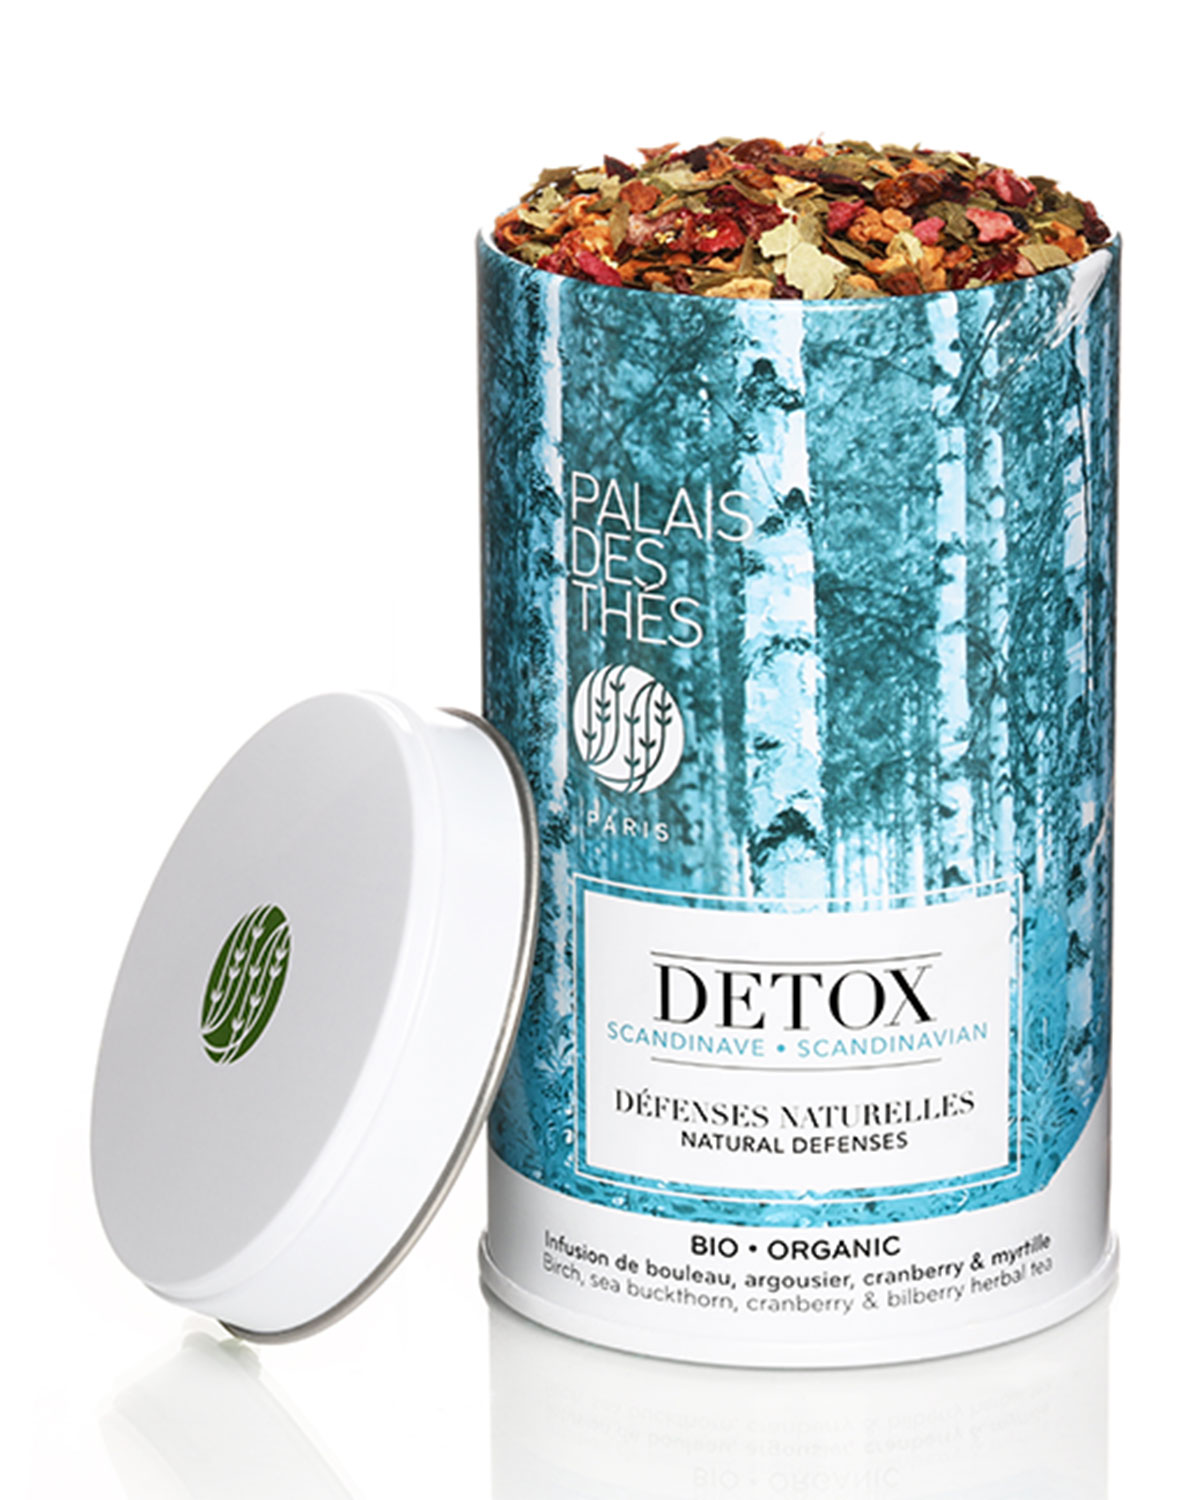 Scandinavian Detox Natural Defenses Tea